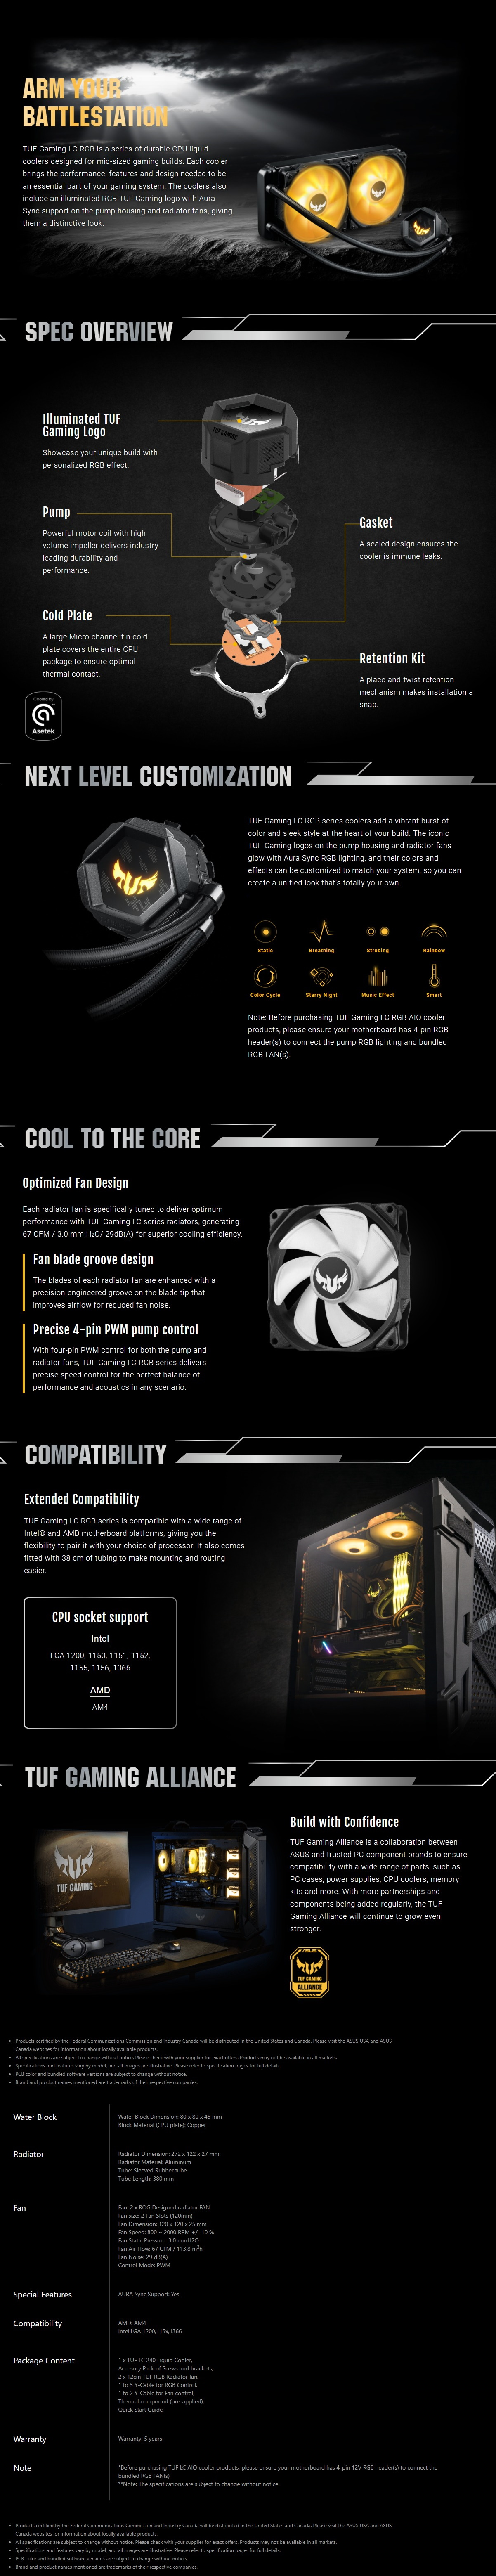 A large marketing image providing additional information about the product ASUS TUF Gaming LC 240mm RGB AIO Liquid Cooler - Additional alt info not provided